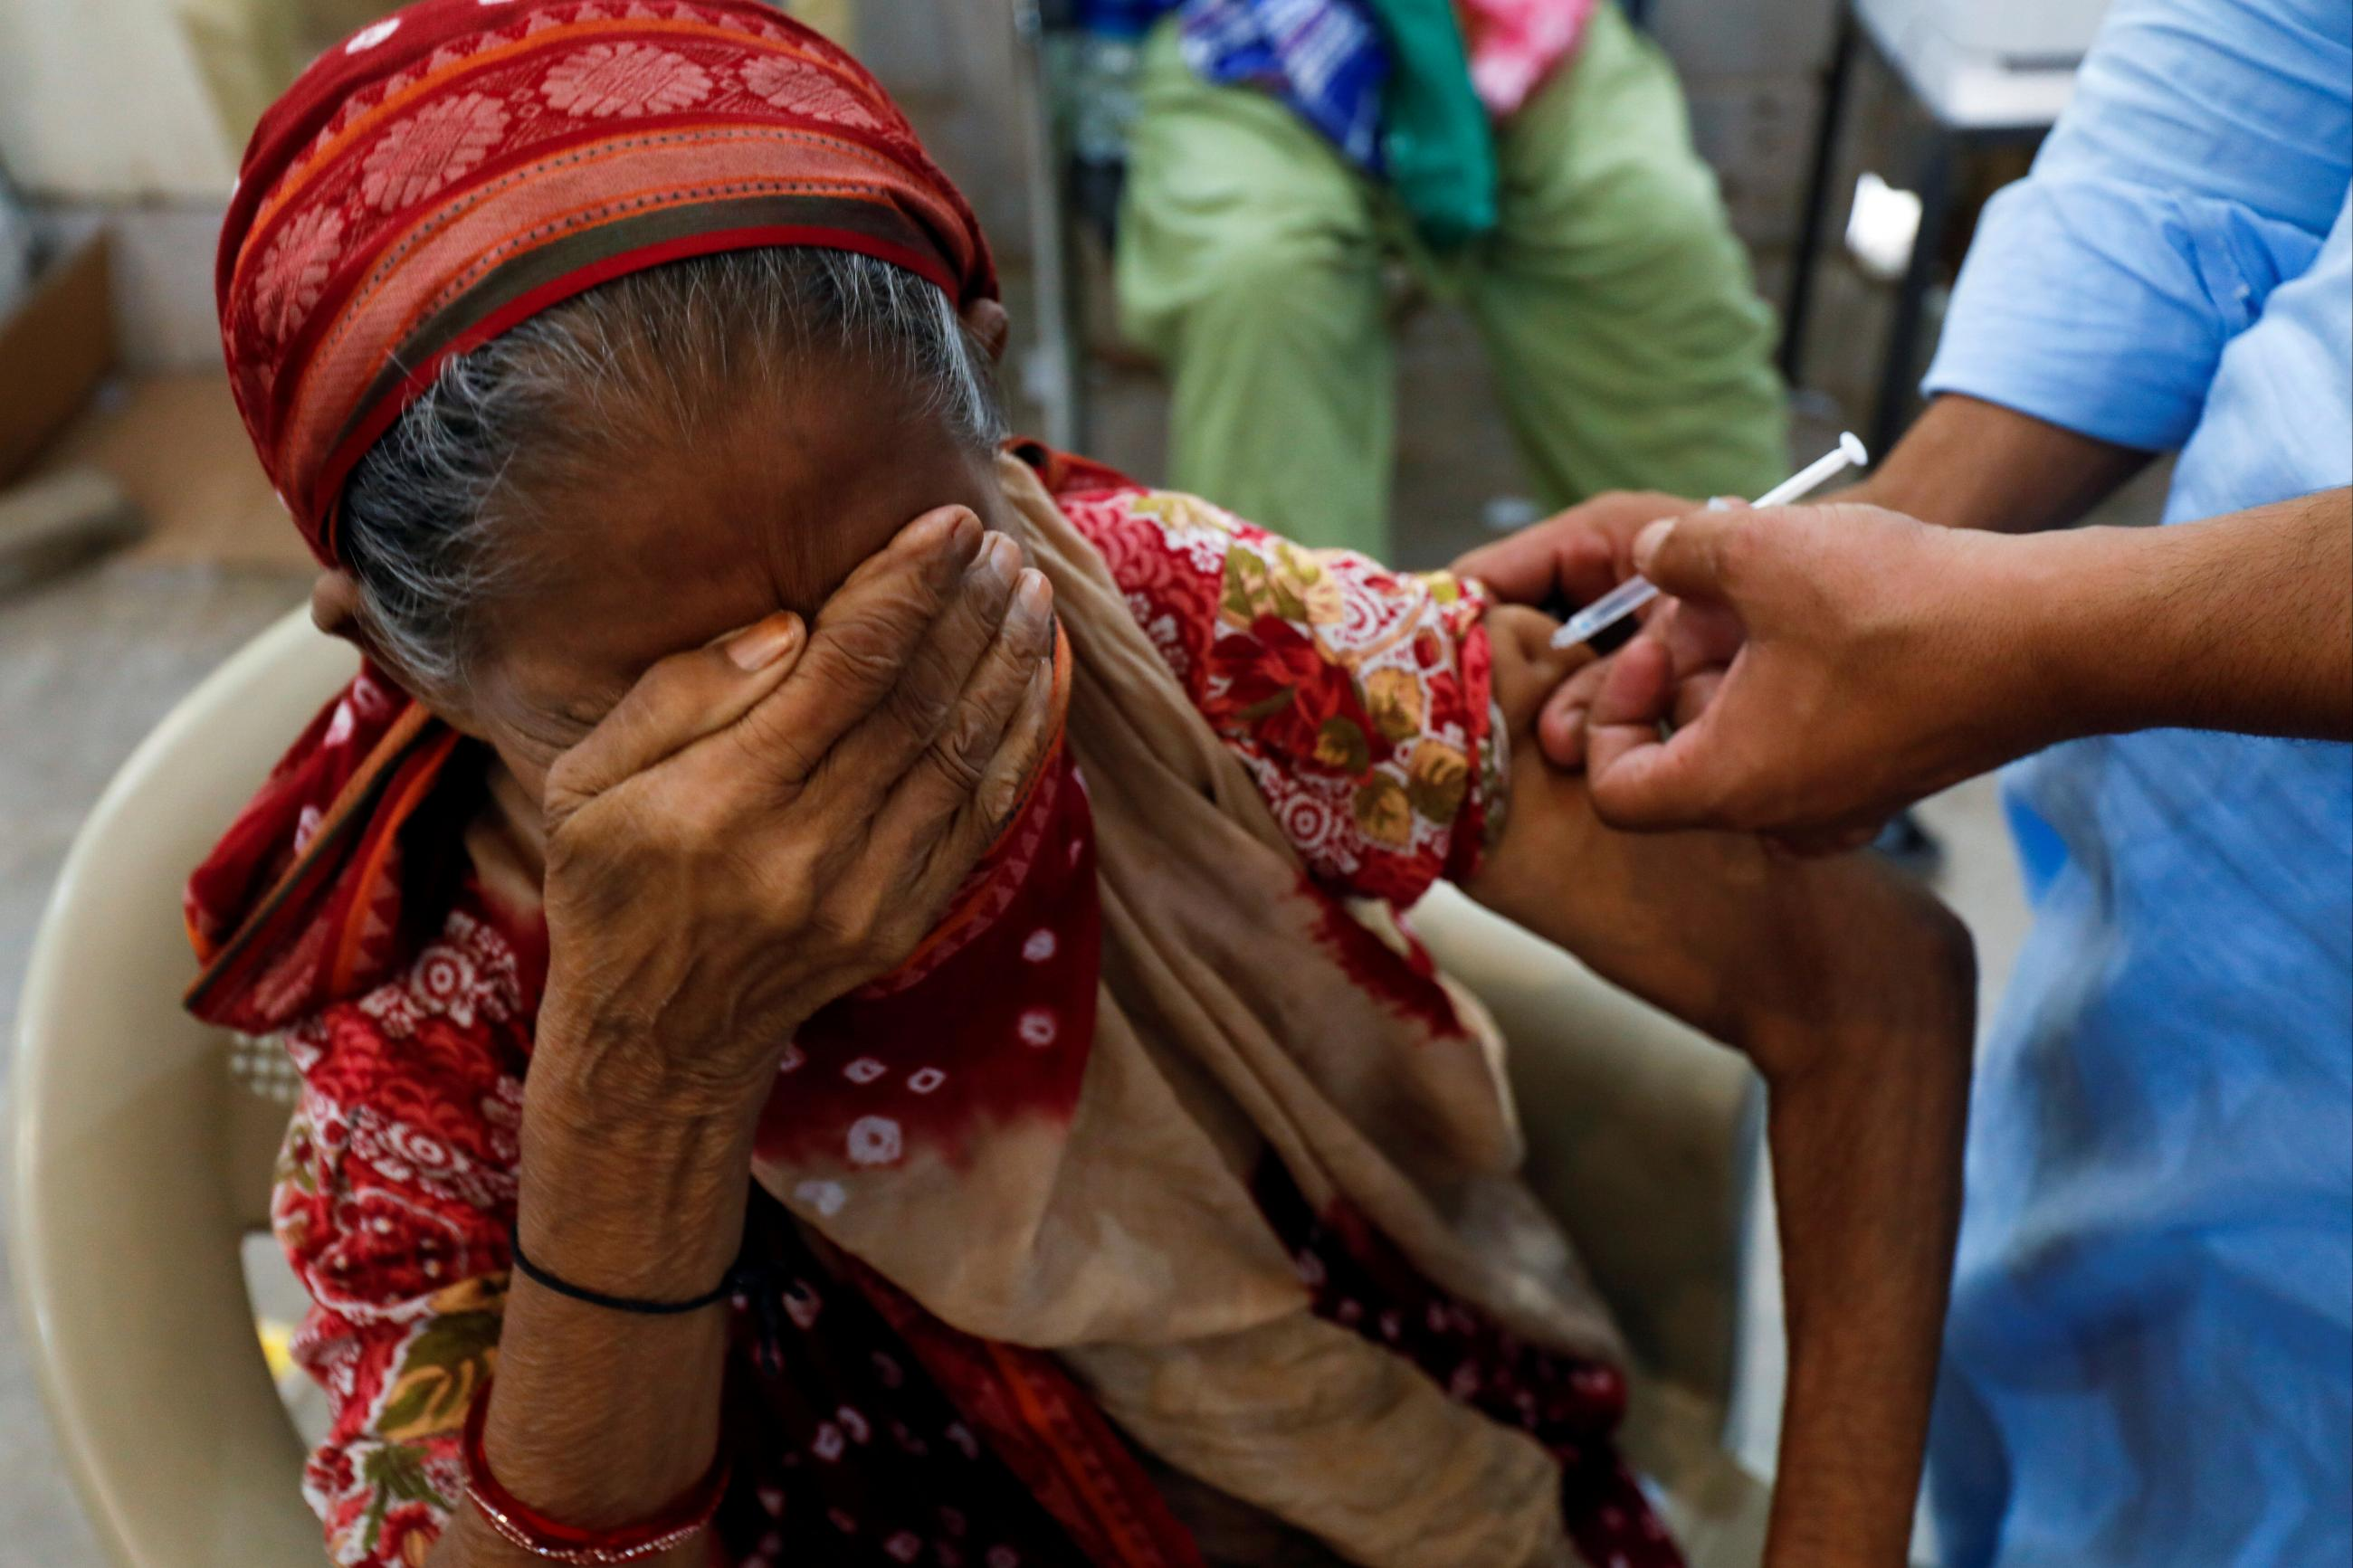 A woman, Basanti, 71, reacts as she receives a dose of the COVID-19 vaccine at a vaccination center in Karachi, Pakistan, on June 9, 2021.